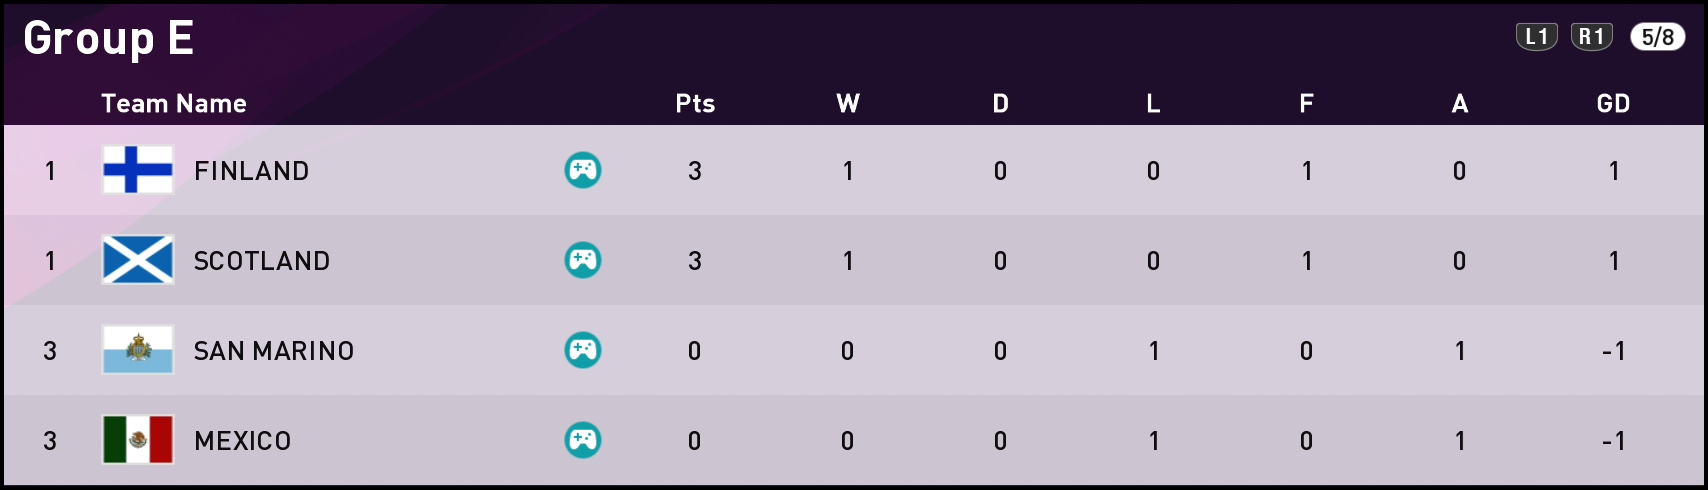 FTWC20-Group-E-1-Game.png